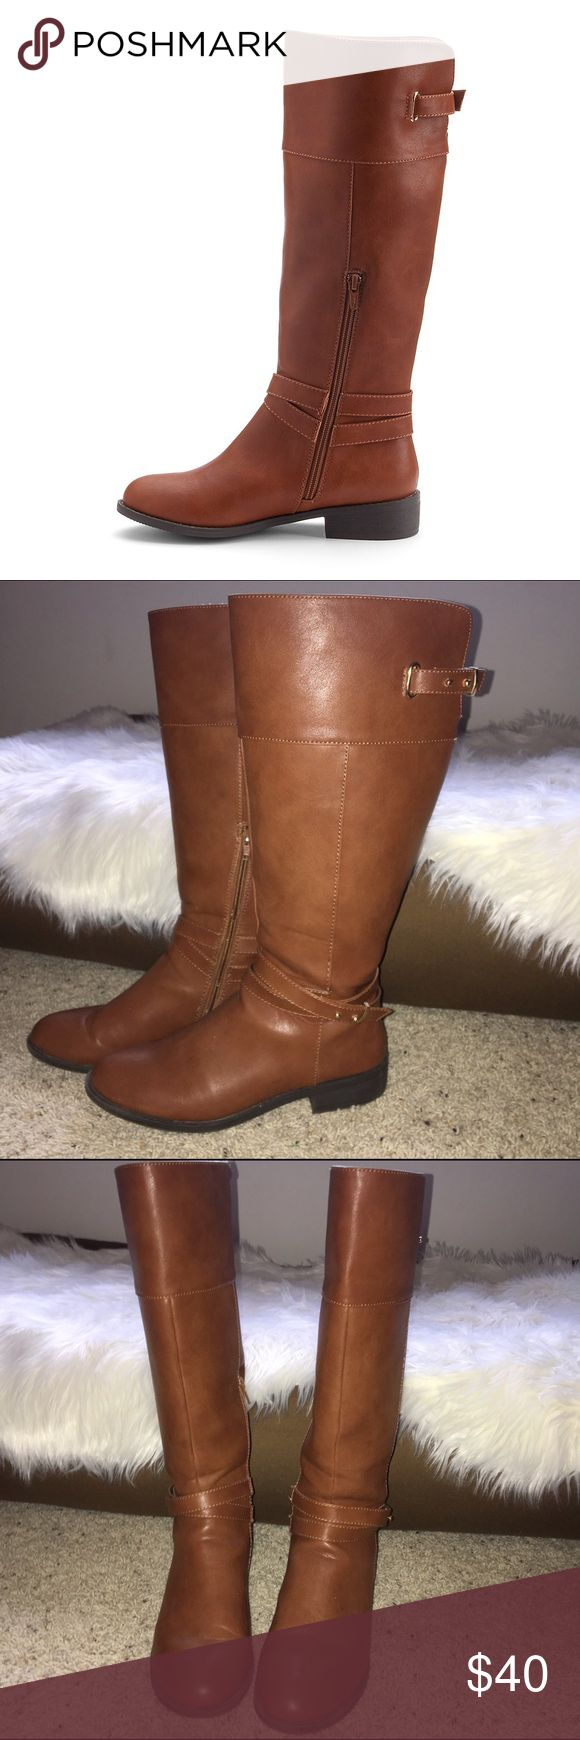 LC Lauren Conrad Women's Riding Boots LC Lauren Conrad Women's Tall Riding Boots Size 8. Runs true to size! Hardly shows any signs of wear! Only worn a couple times. EEUC I'm 99% sure I have the box for these in my closet! I will update & if I do I will ship them with the original box LC Lauren Conrad Shoes